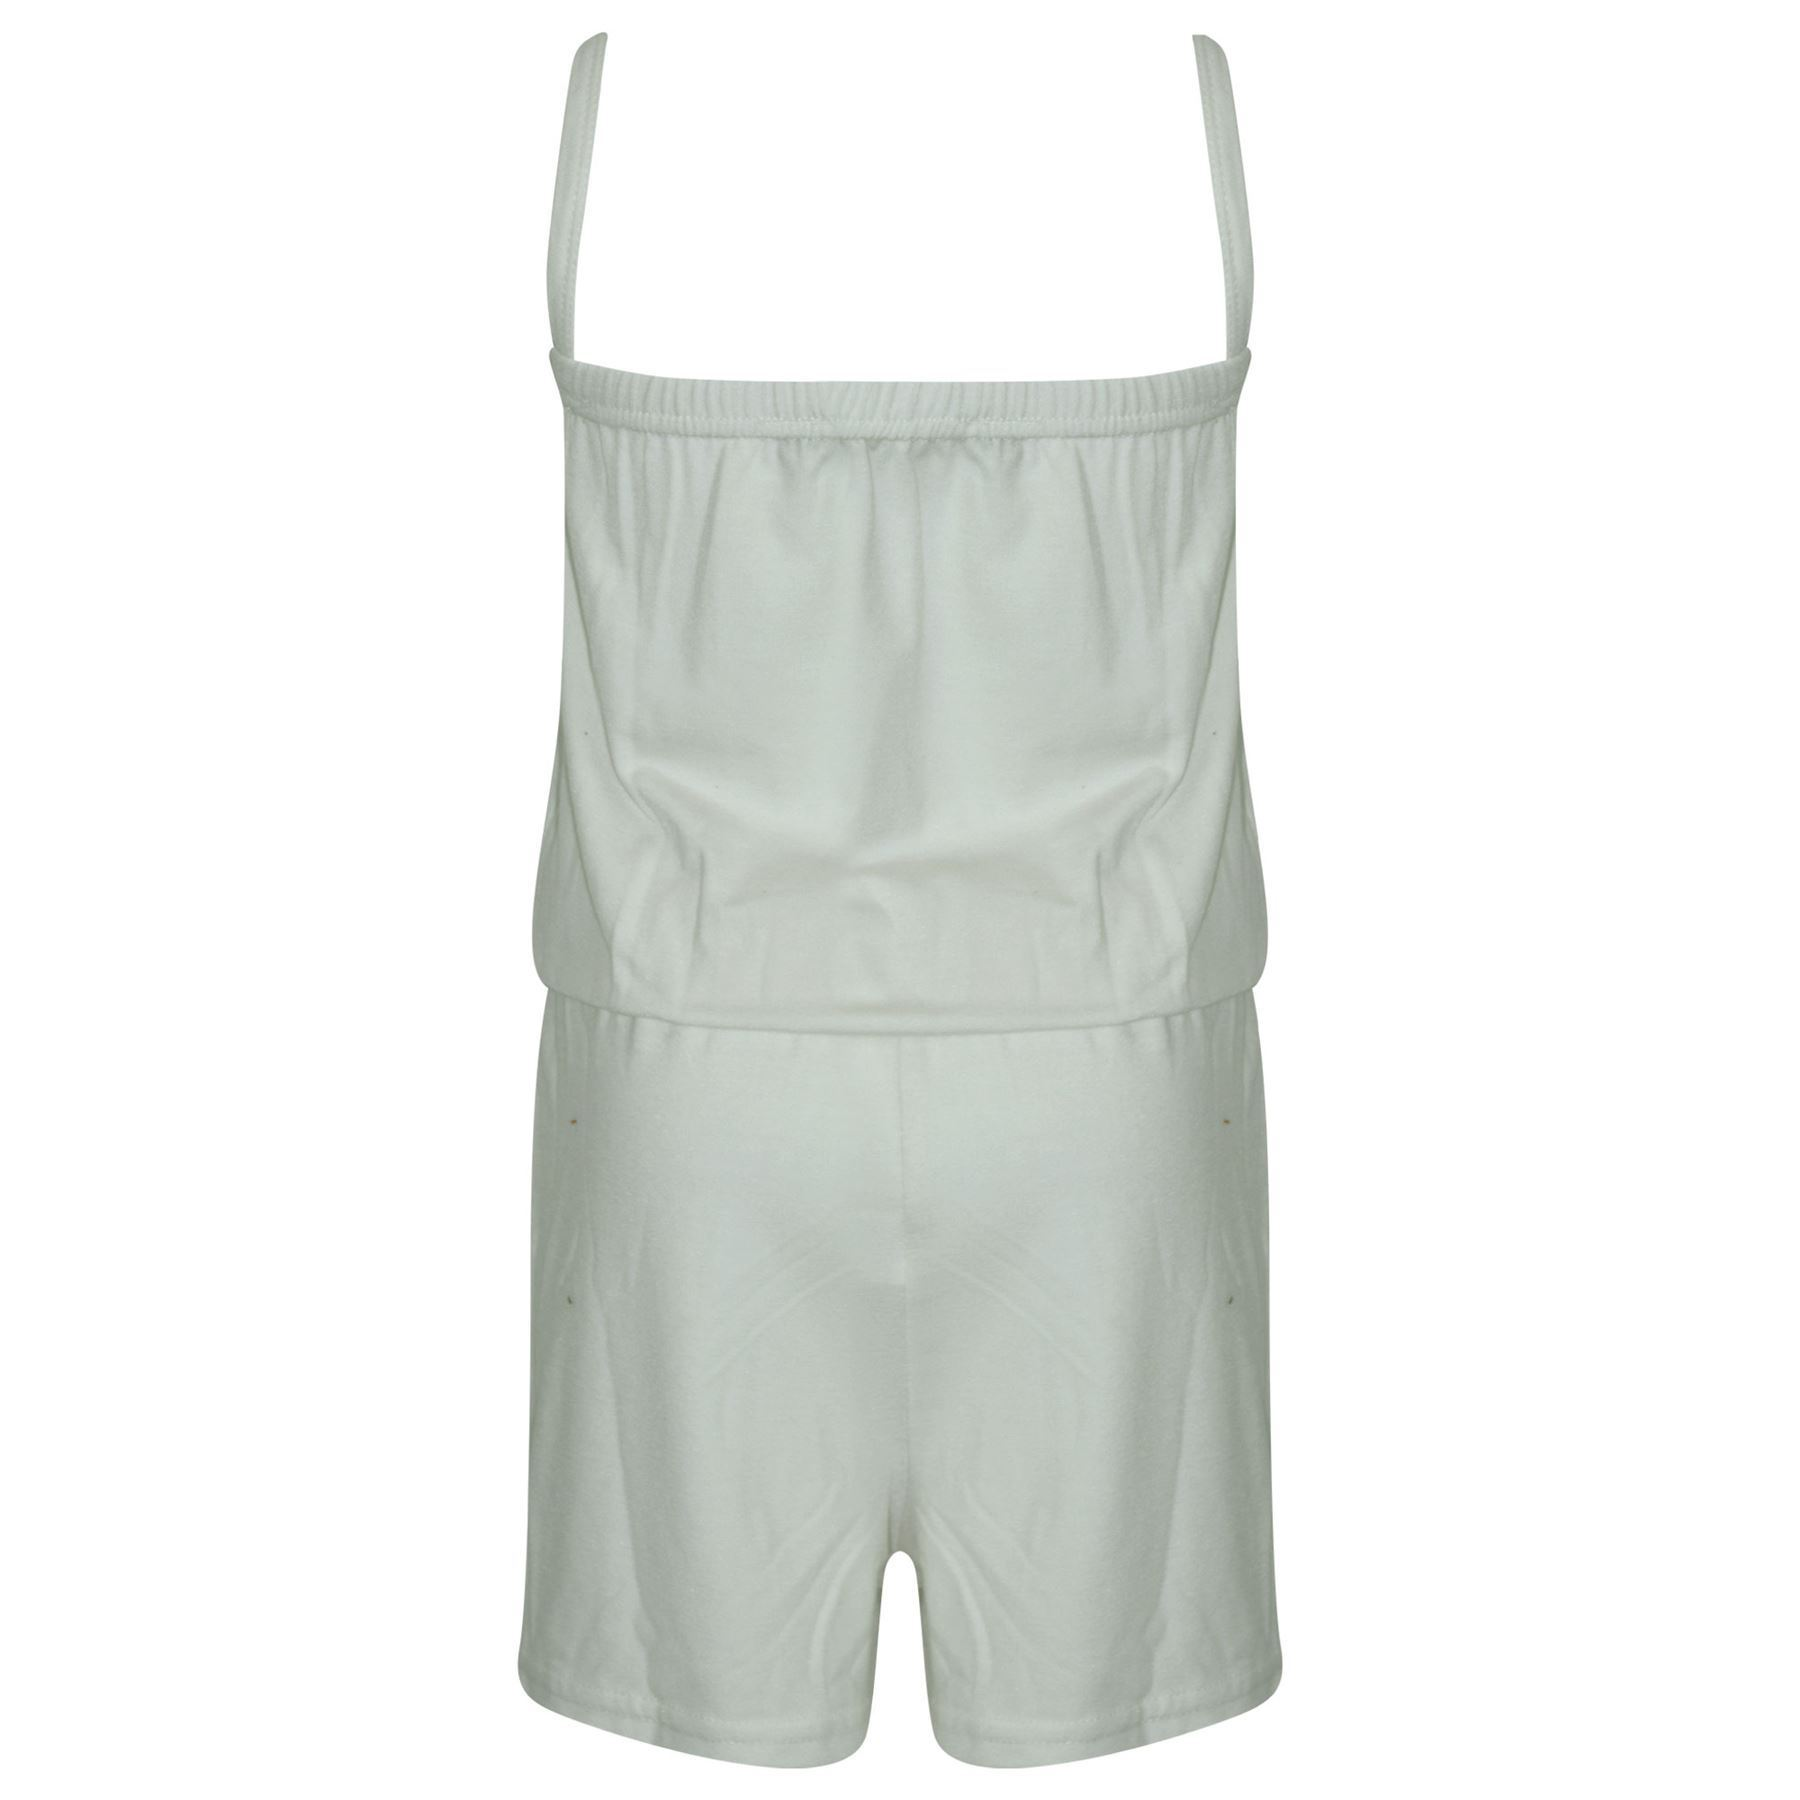 Girls Jumpsuit Kids Plain Color Trendy Playsuit All In One Jumpsuits 5-13 Years